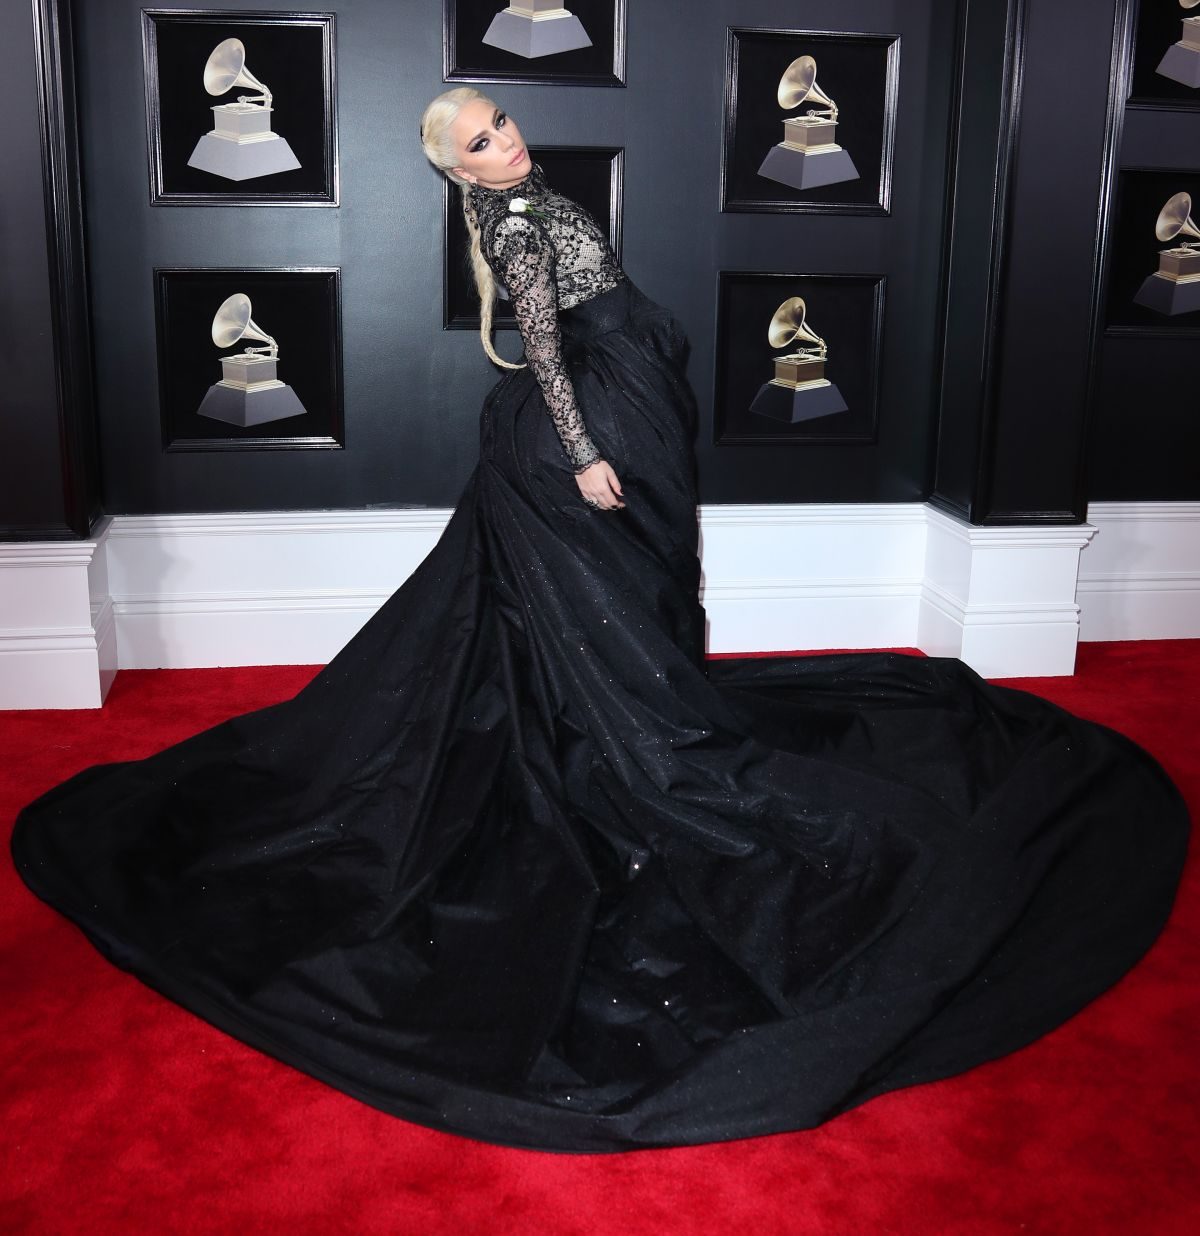 Lady Gaga flaunts dramatic ballgown at the 2018 Grammy Awards